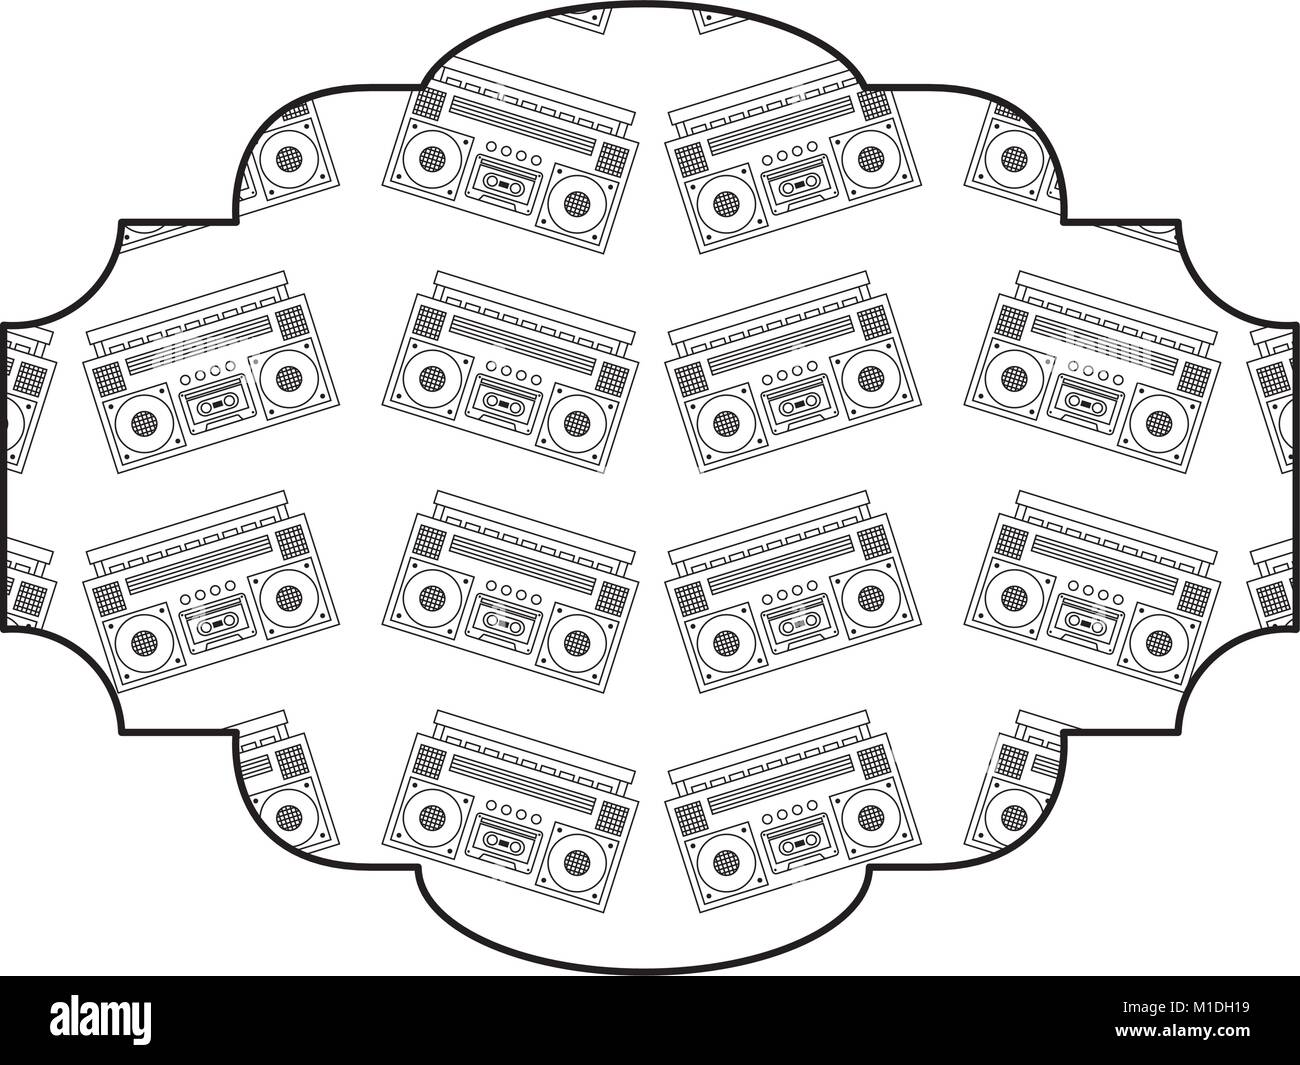 Diagram Of A Recorder That Is Label Wiring And Ebooks Measuring Tape Pattern Vintage Stereo Player Vector Illustration Rh Alamy Com On